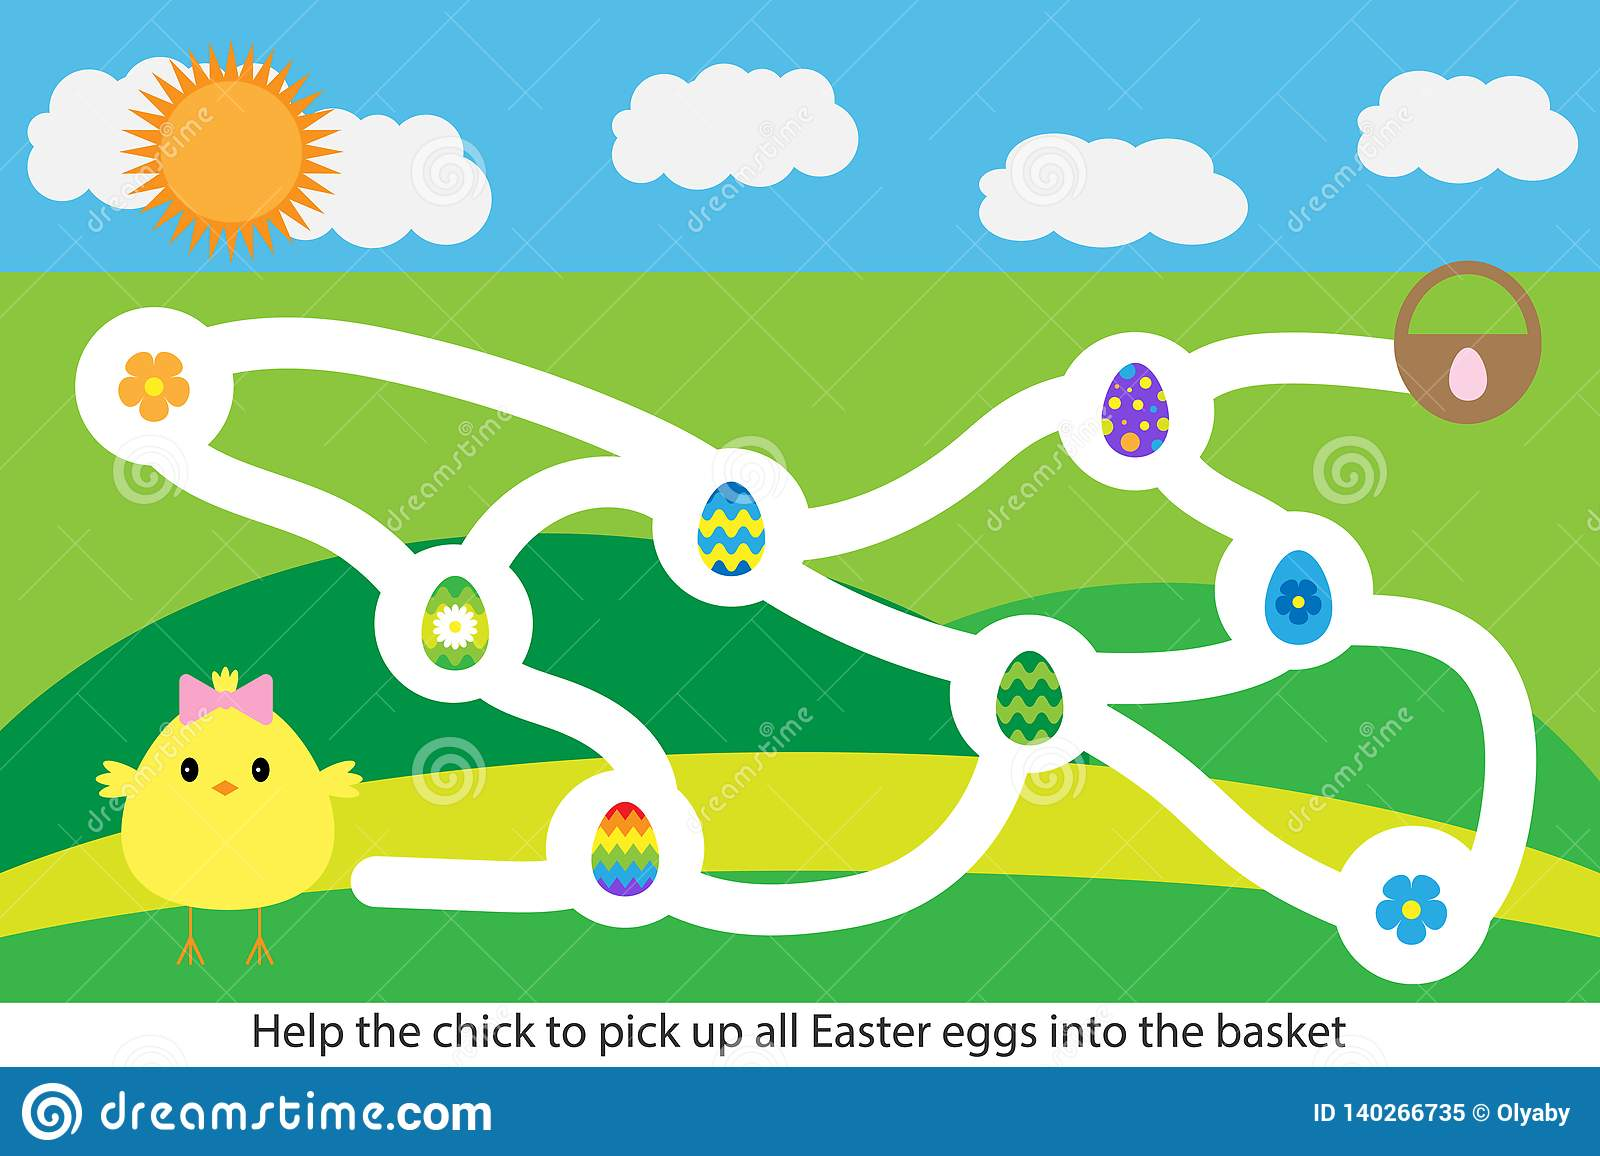 Easter Labyrinth Maze Game Help The Chick To Pick Up All